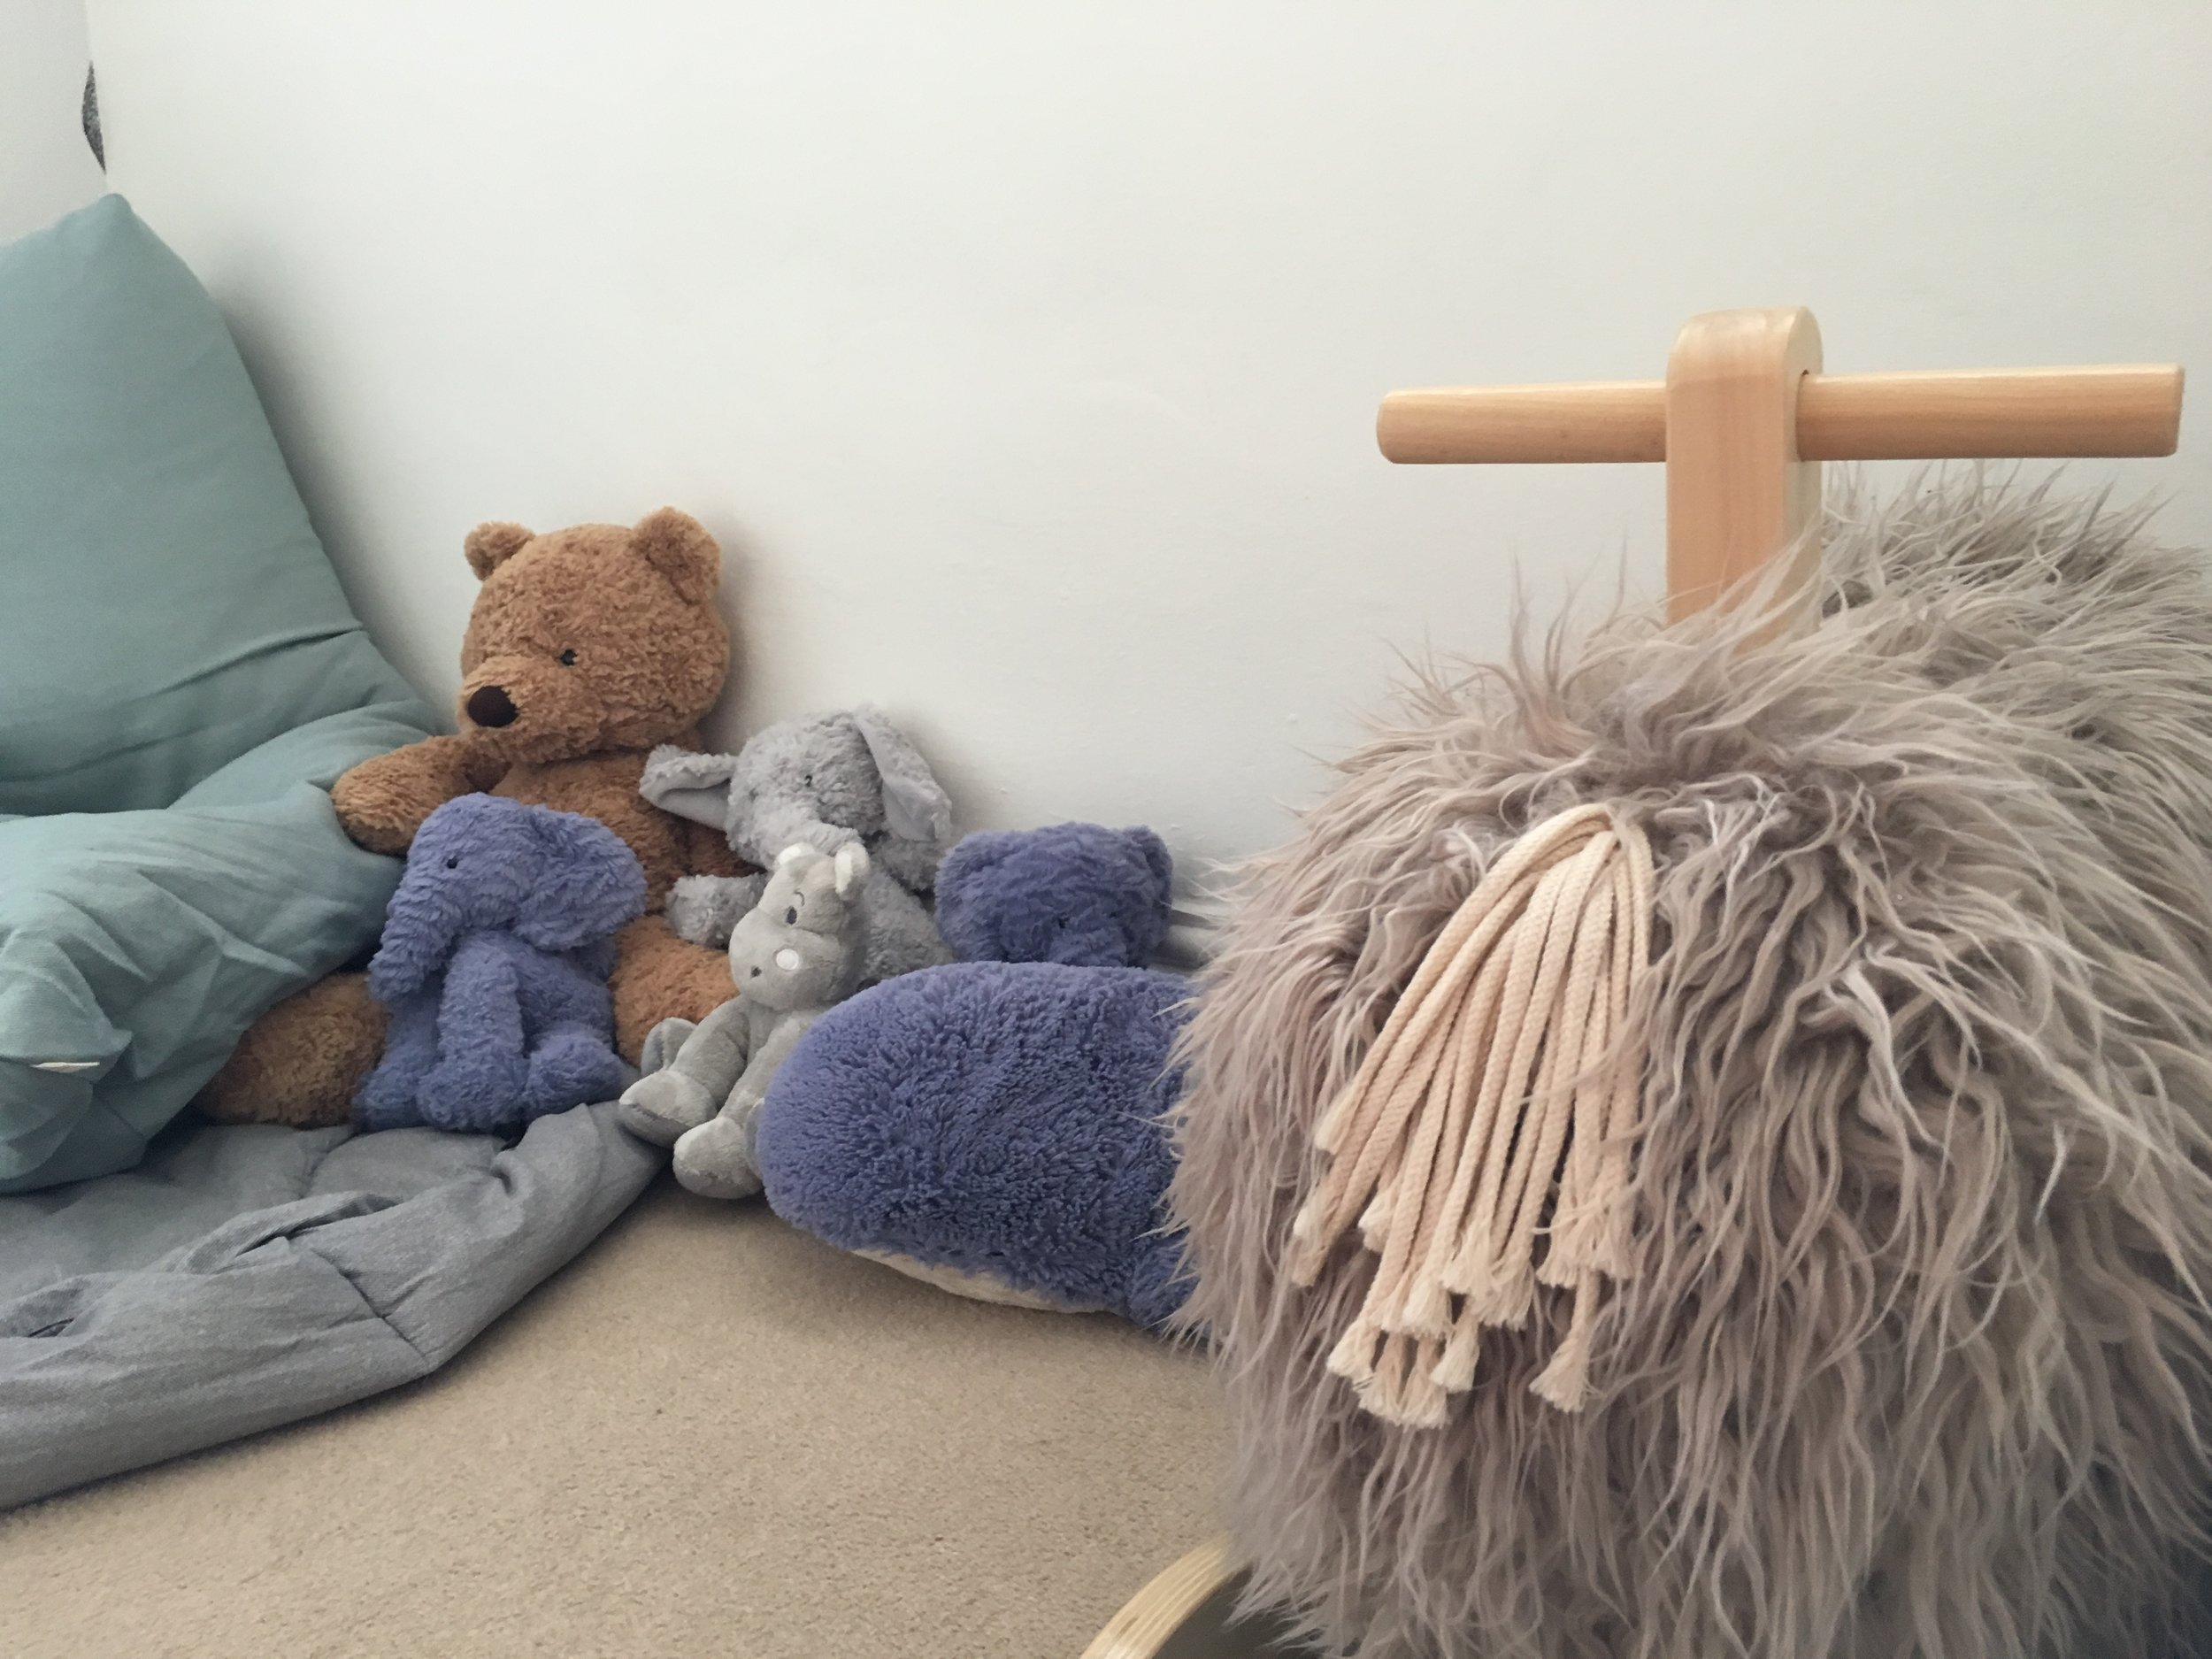 we decided to get a lovely cozy collection of animal toys for ruperts bedroom including this very cute Wooly Mamouth!